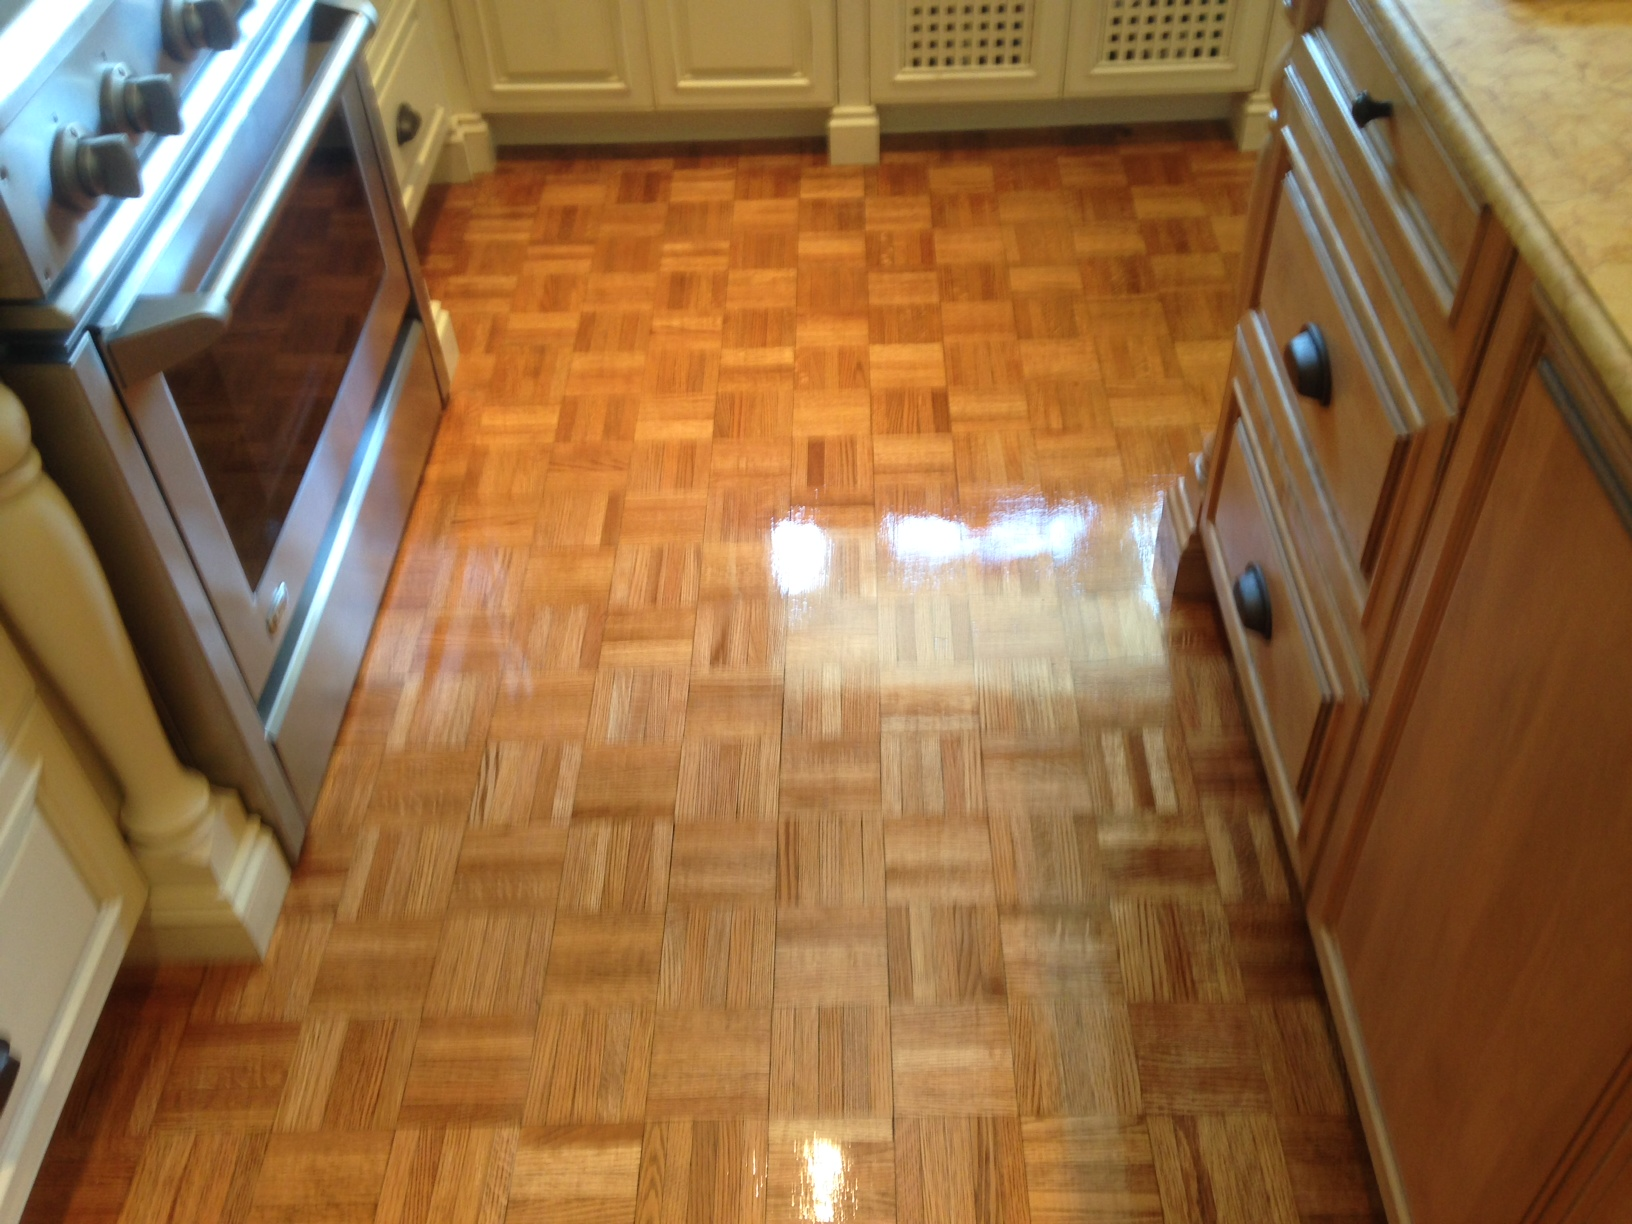 screening and recoating plank and parquet flooring